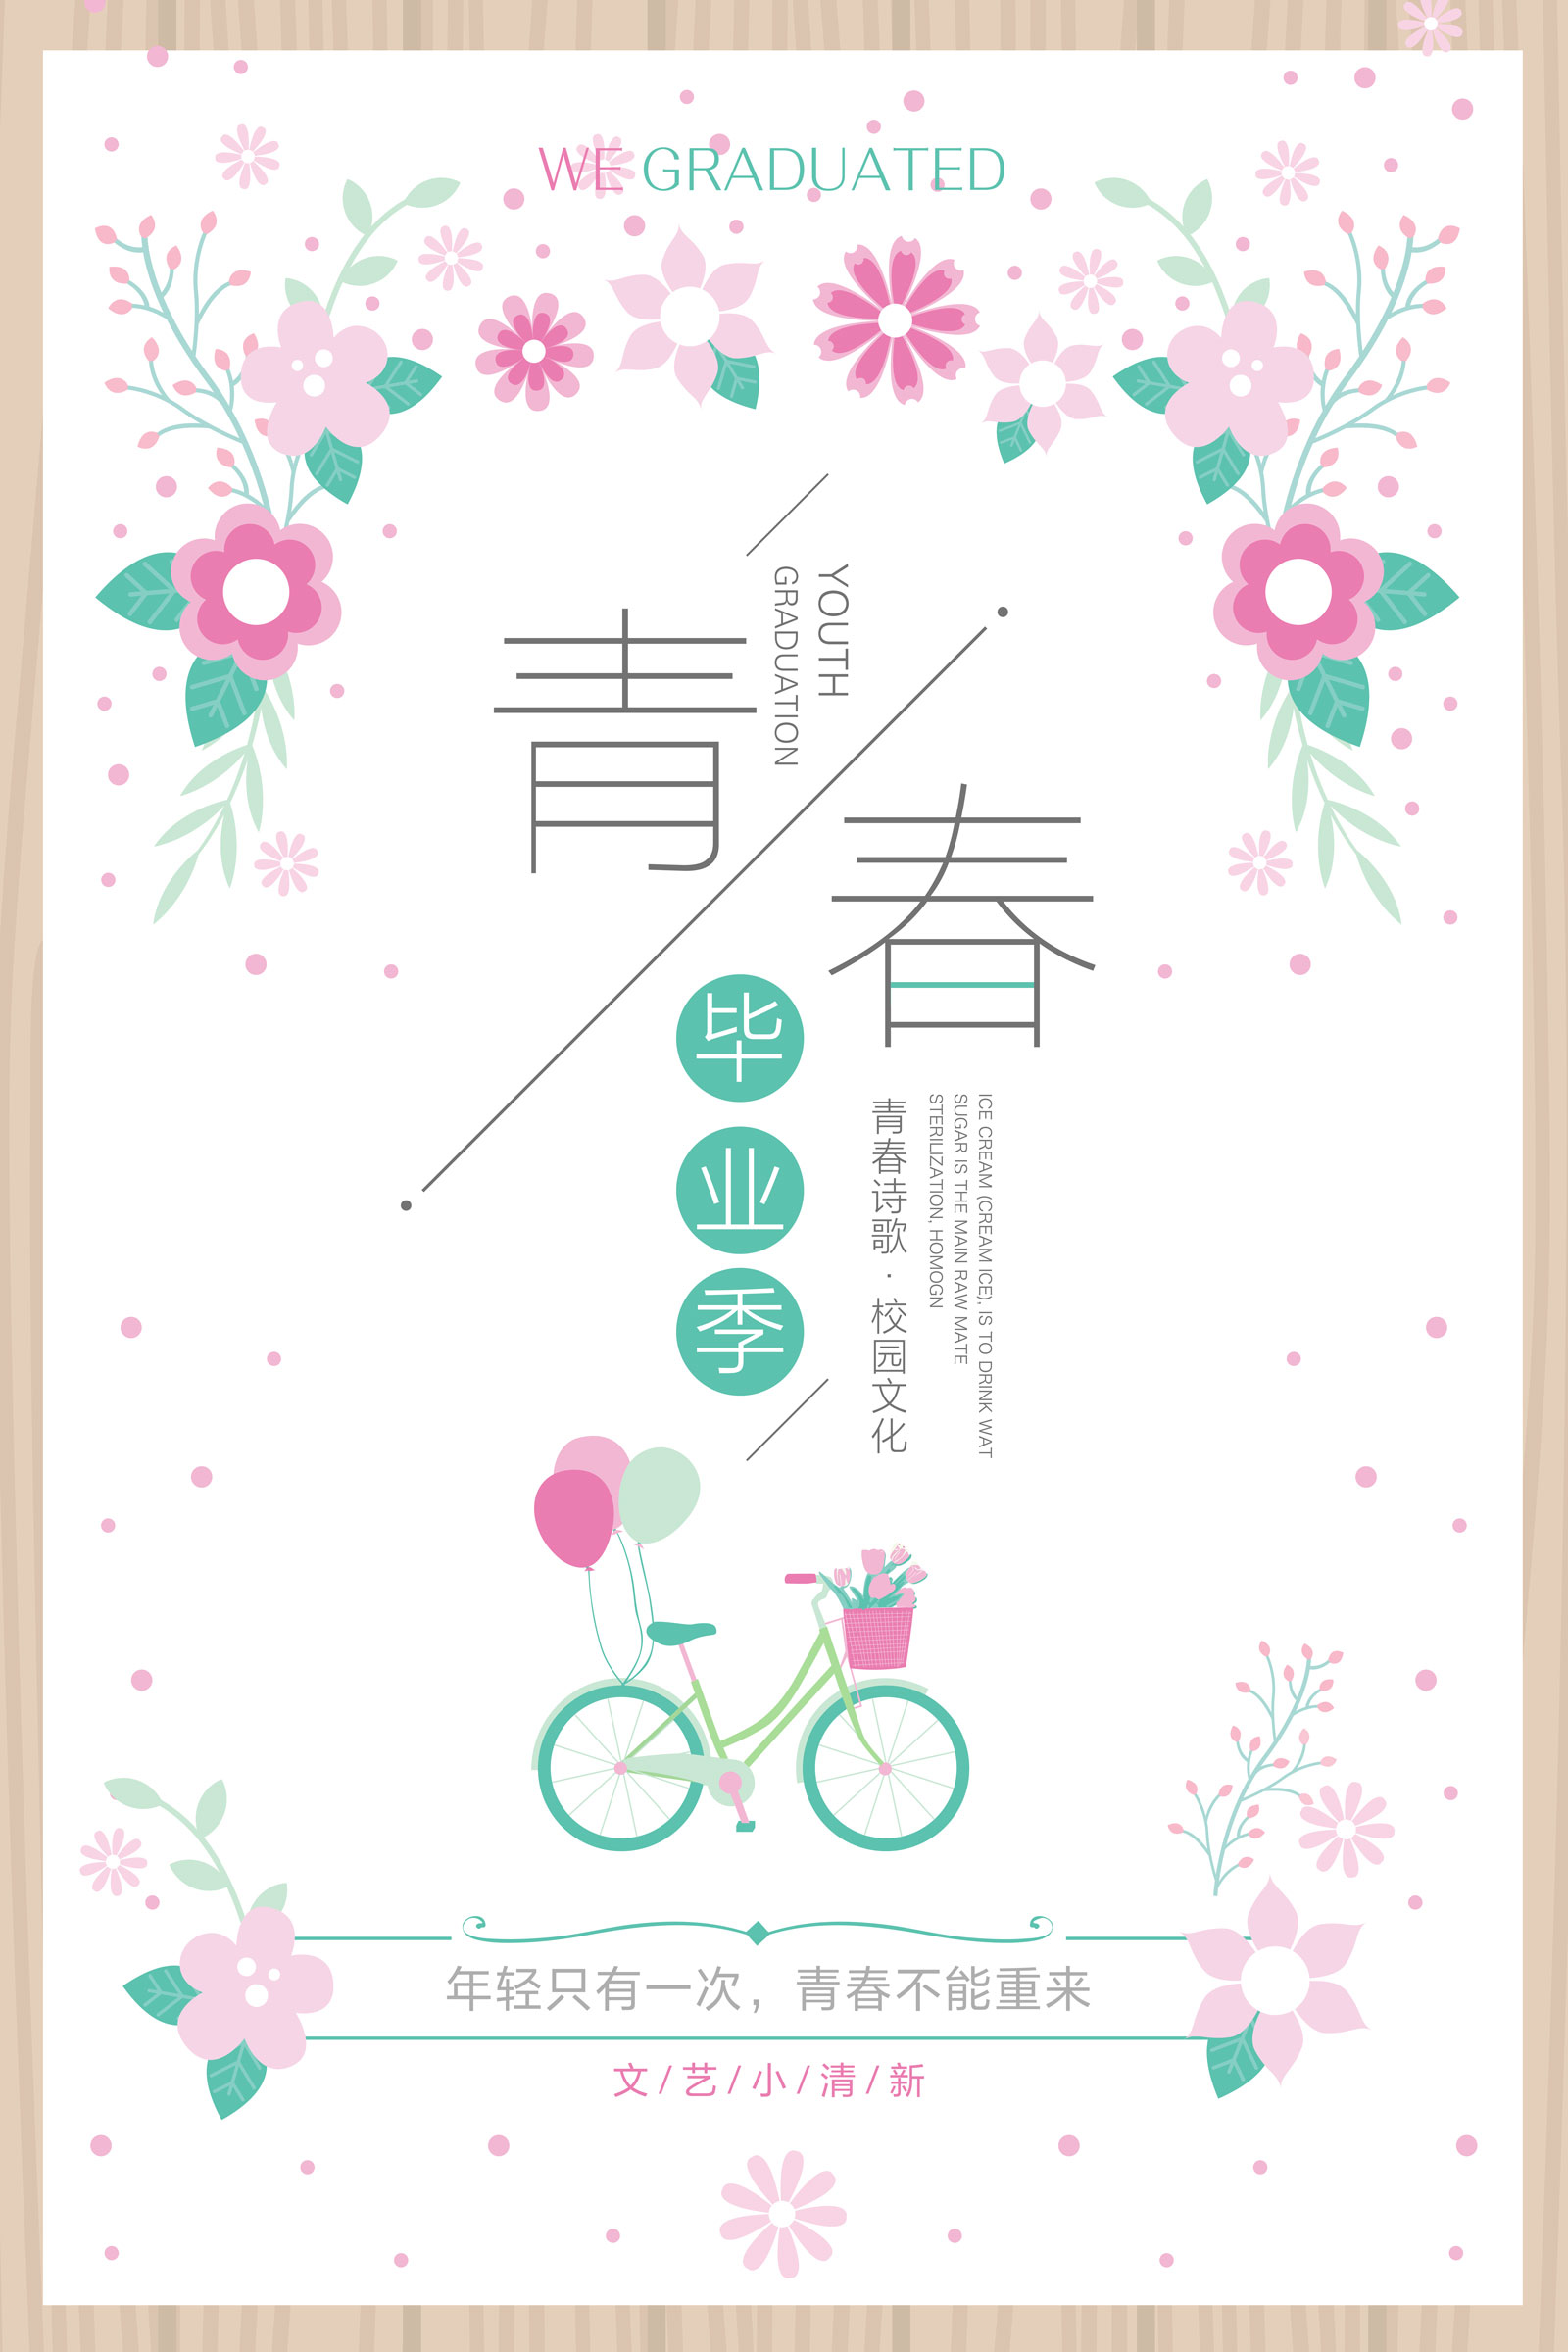 chinesefontdesign.com 2017 03 21 19 33 59 Youth graduation quarter poster PSD material China PSD File Free Download